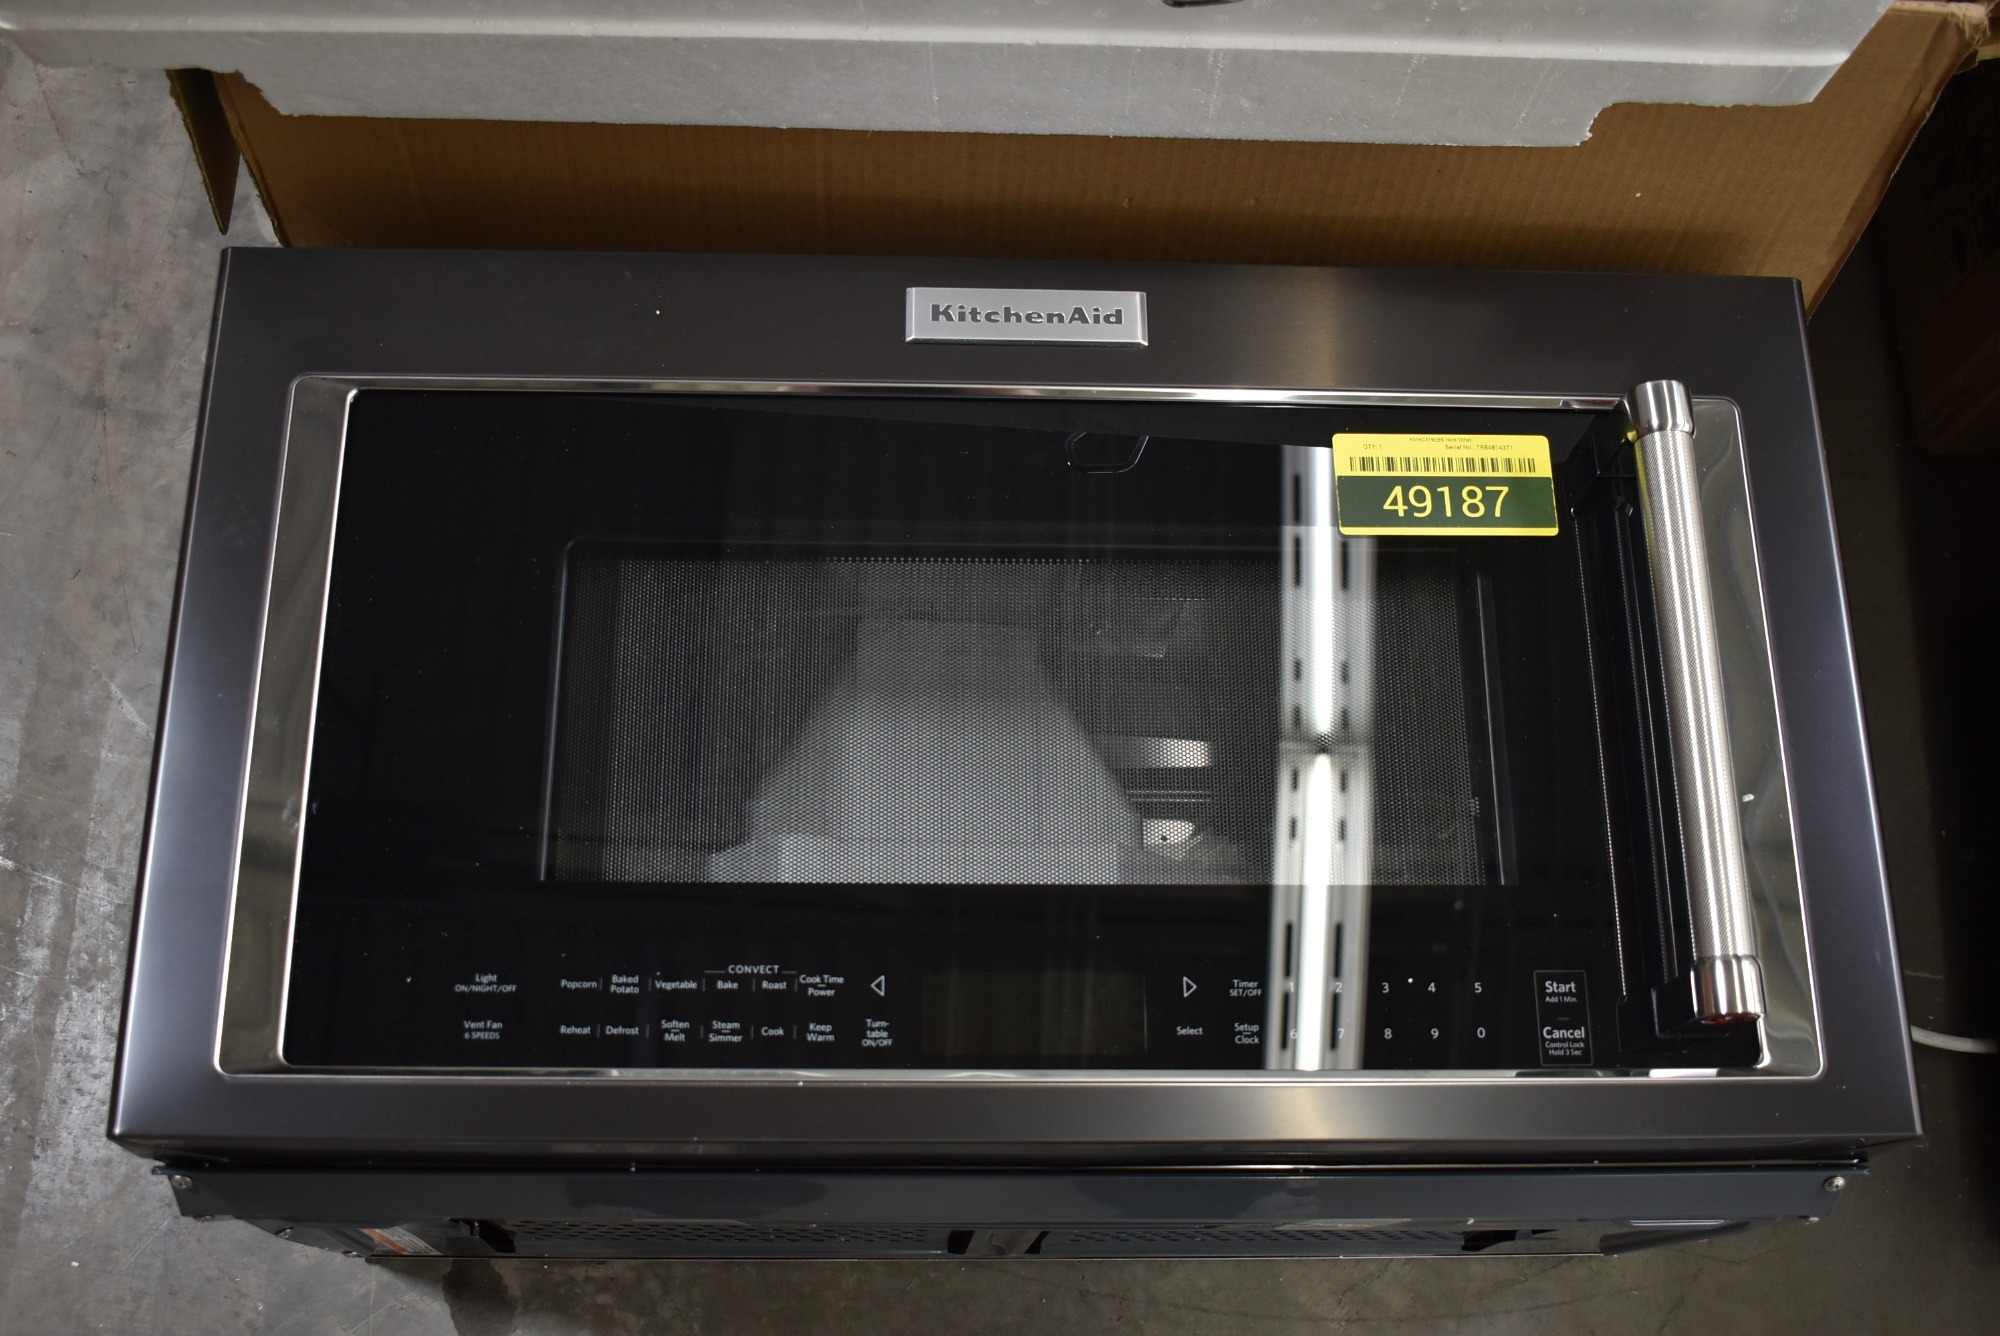 KitchenAid KMHC319EBS 30